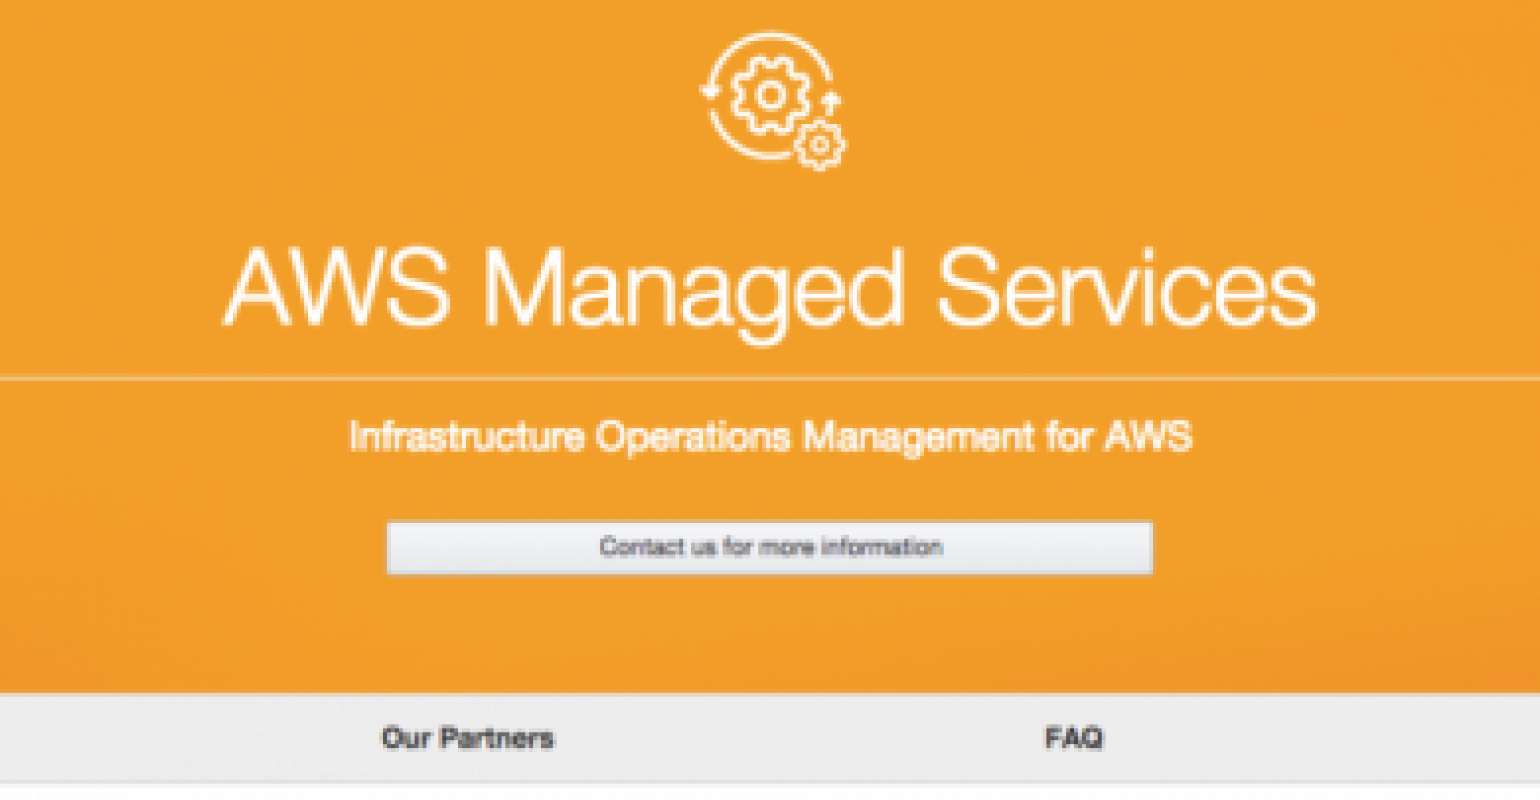 AWS Launches Managed Services | Data Center Knowledge